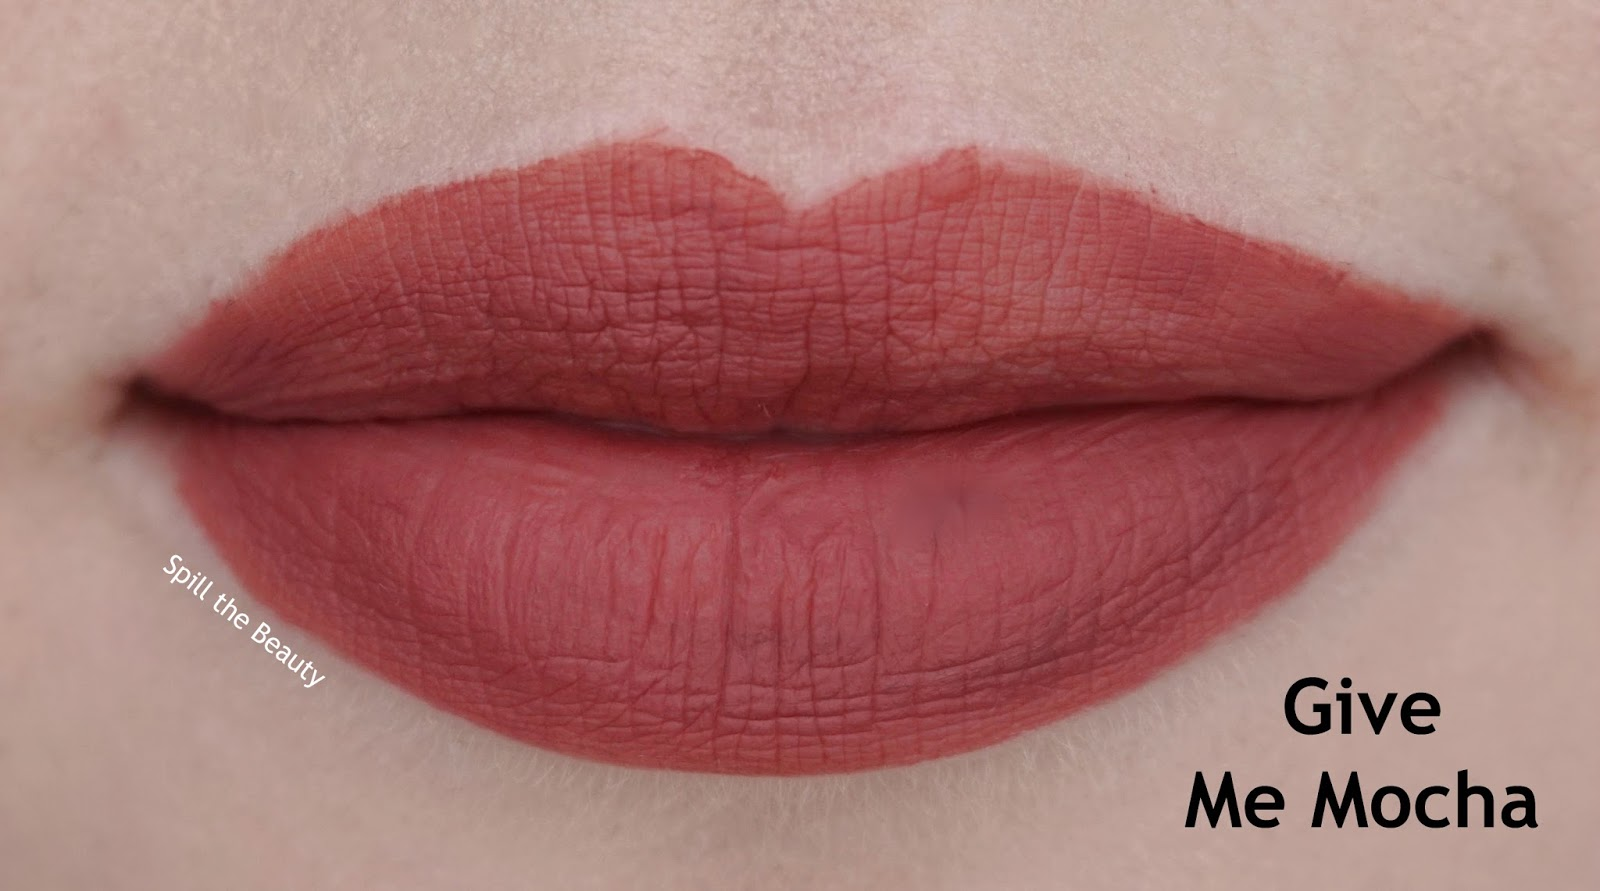 wet n wild liquid catsuit matte lipstick review swatches look give me mocha 925b lips